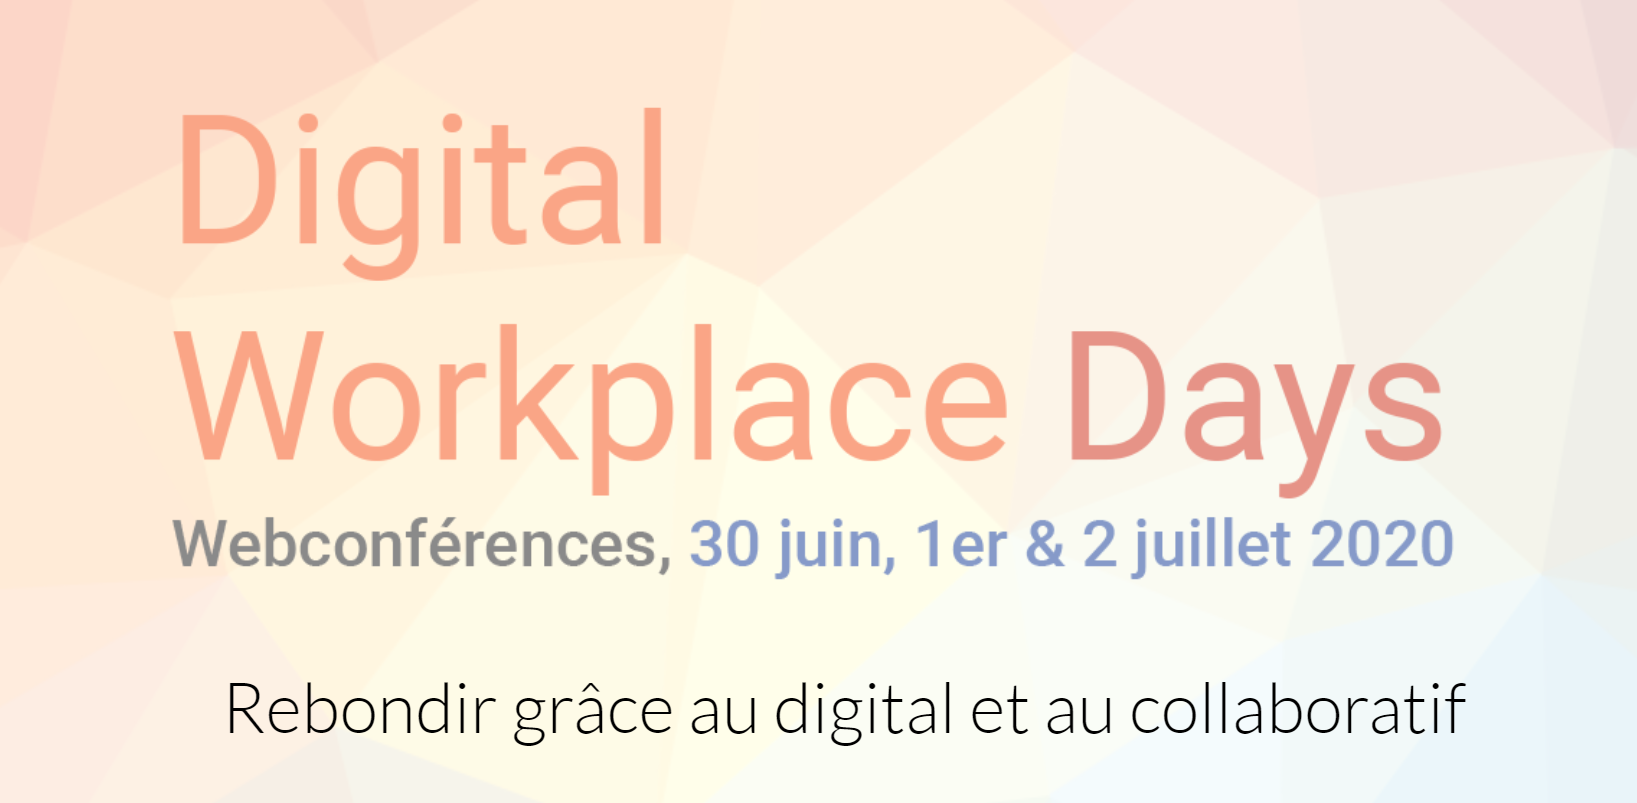 Digital Workplace Days: A look back at the biggest virtual event around the Digital Workplace!